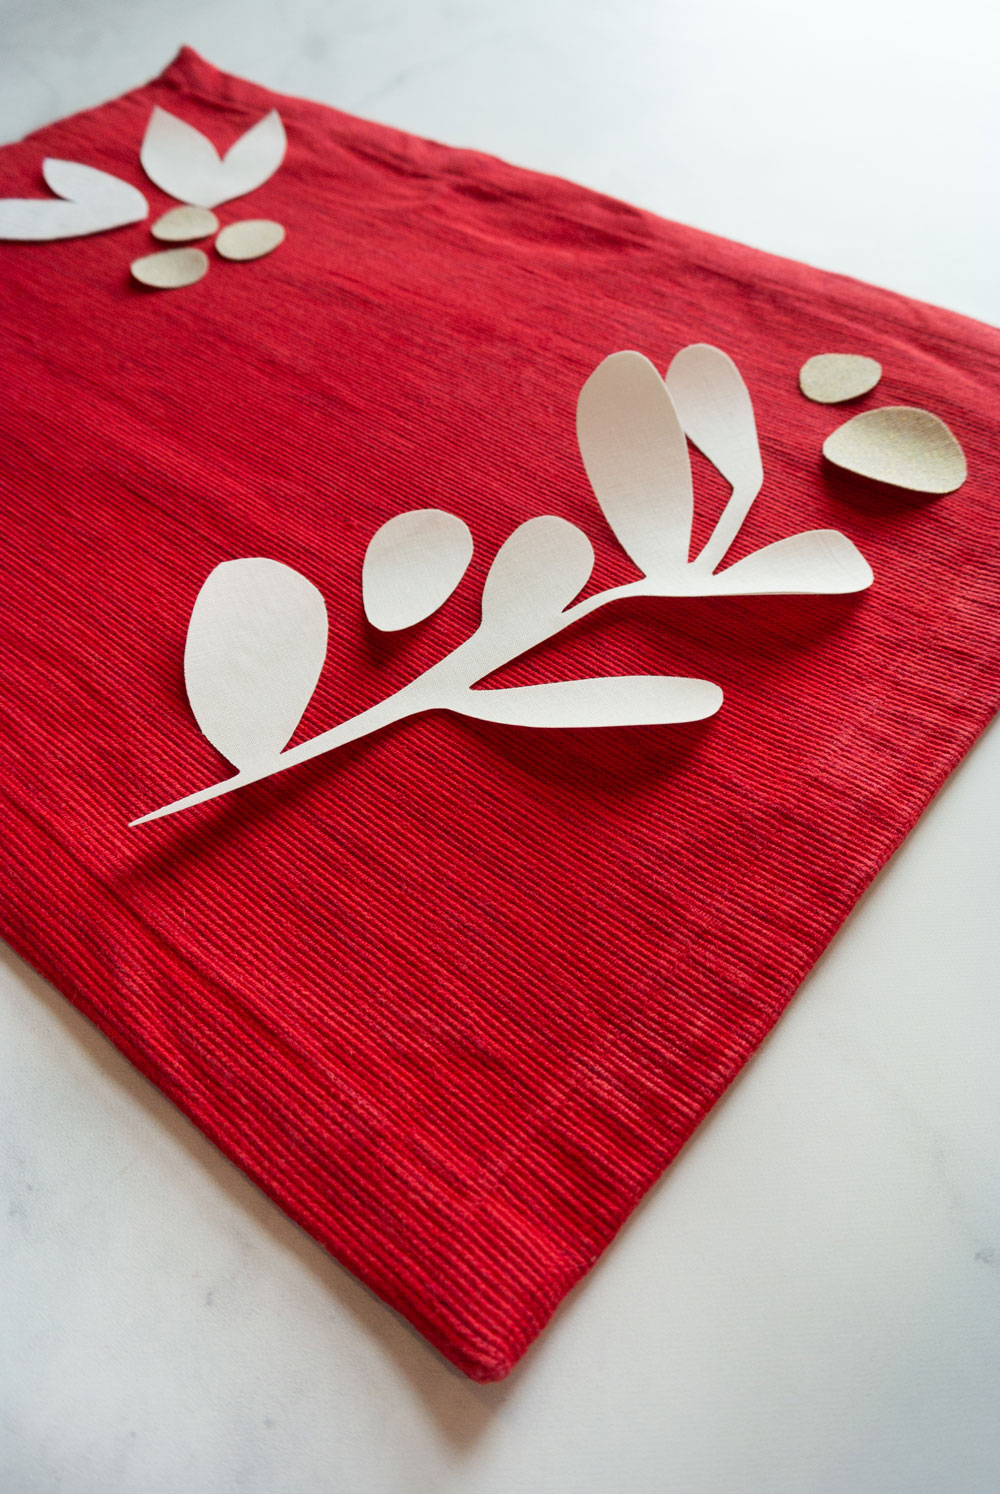 A FREE DIY Christmas placemats tutorial! This raw-edge applique sewing tutorial includes supplies, steps and a video tutorial PLUS free modern holiday applique templates! suzyquilts.com #Christmassewing #appliquetutorial